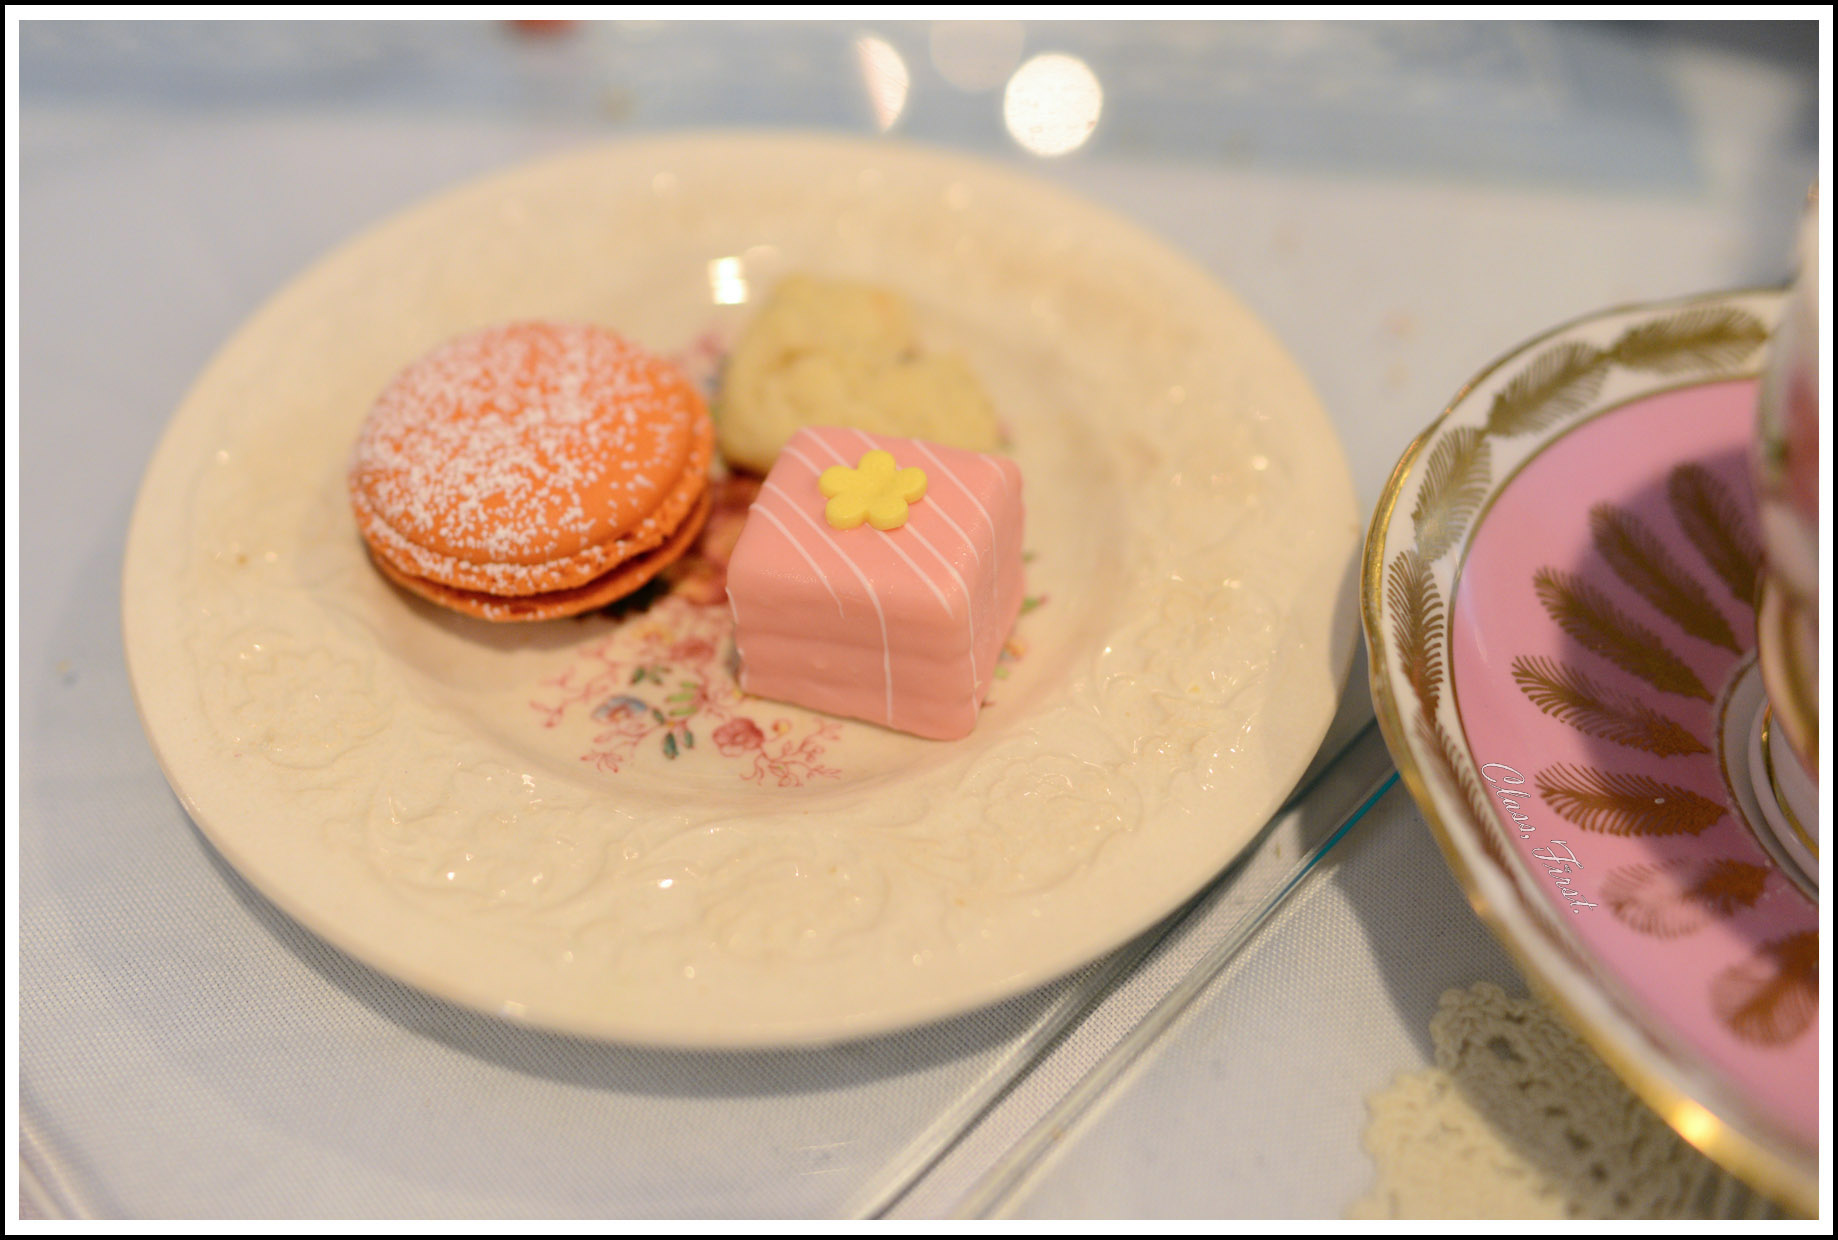 novel cakes and french macarons! delightful!